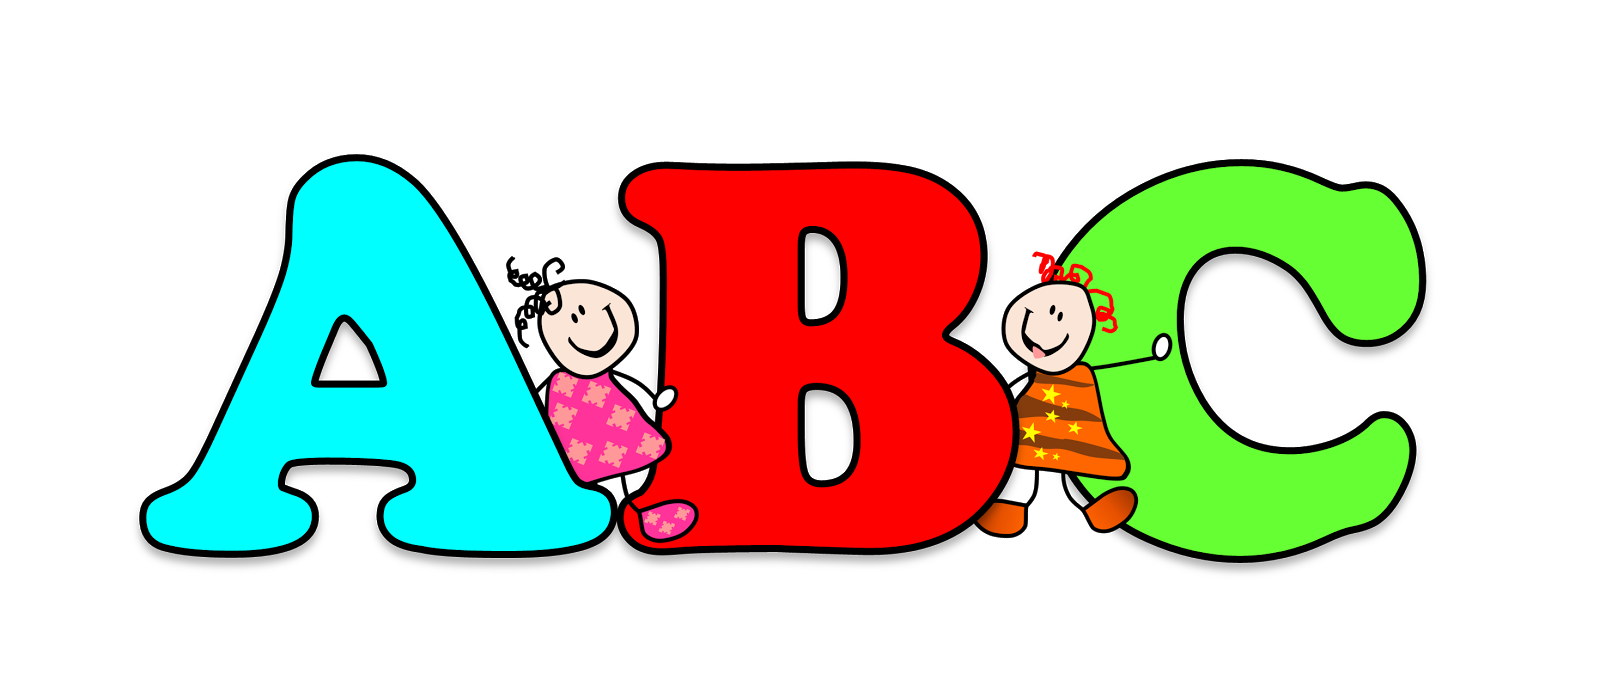 Alphabet cliparts picture free stock Free Abc Clipart Pictures - Clipartix picture free stock